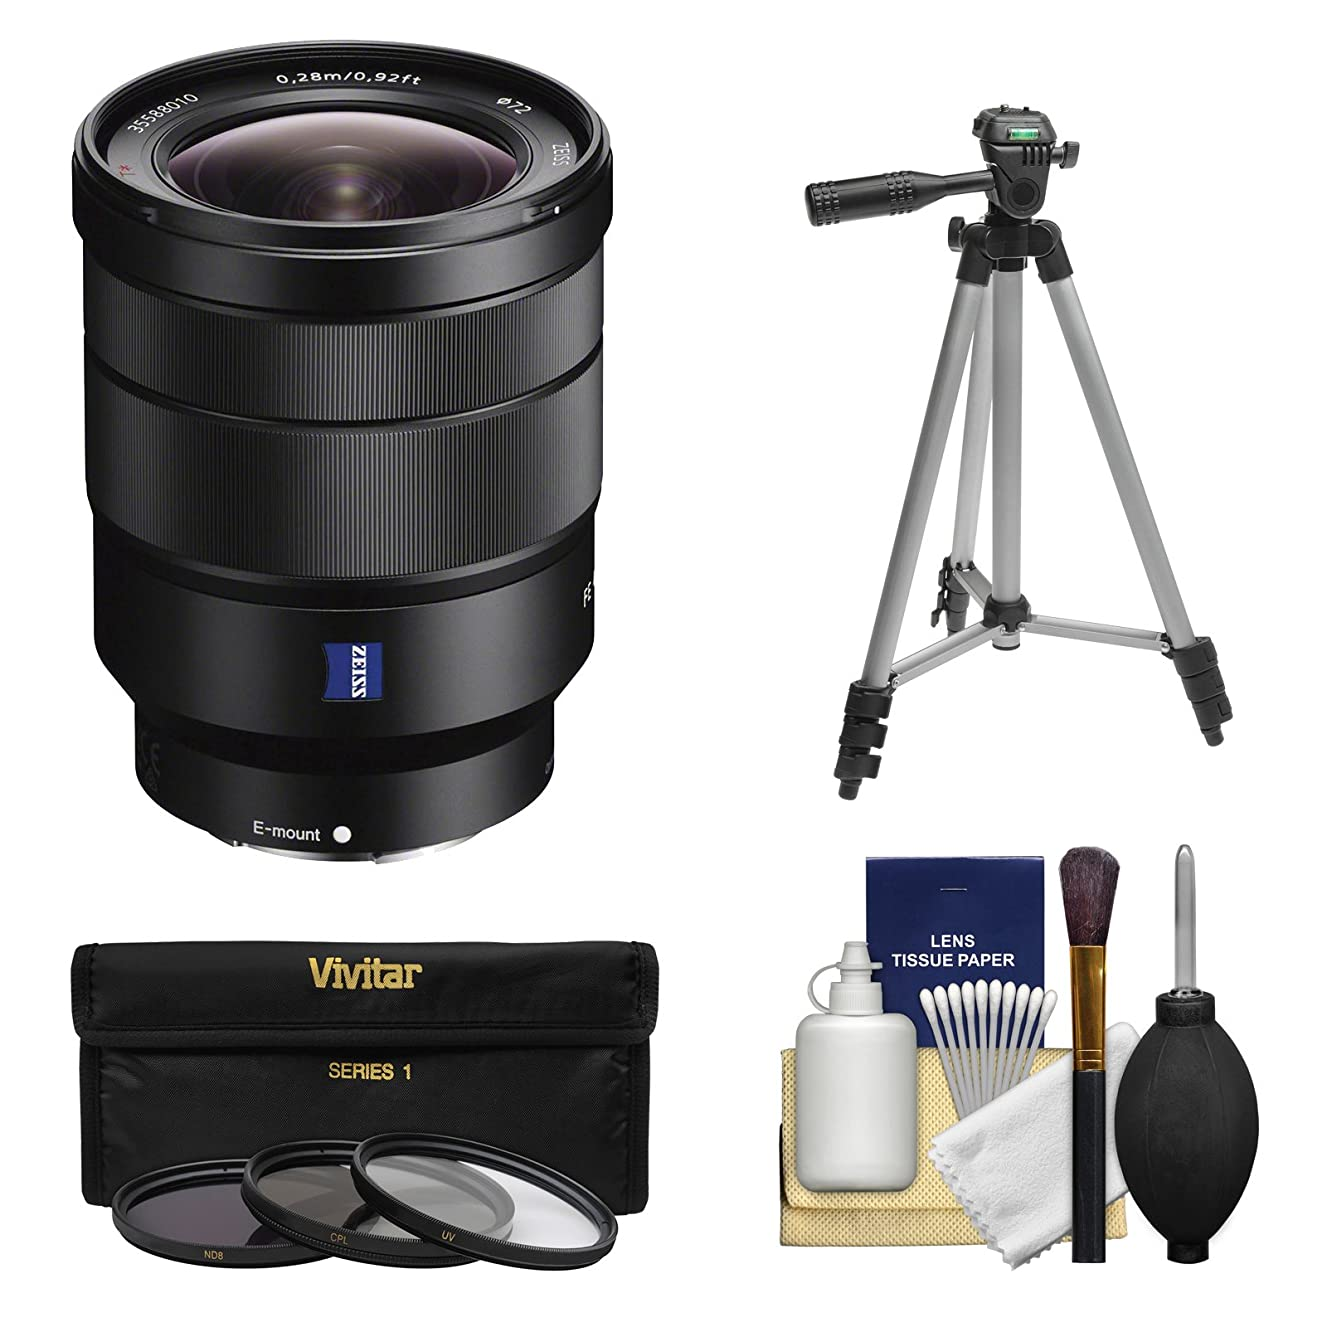 Sony Alpha E-Mount Vario-Tessar T FE 16-35mm f/4.0 ZA OSS Zoom Lens with 3 Filters + Tripod Kit for A7, A7R, A7S Mark II, A5100, A6000, A6300 Camera